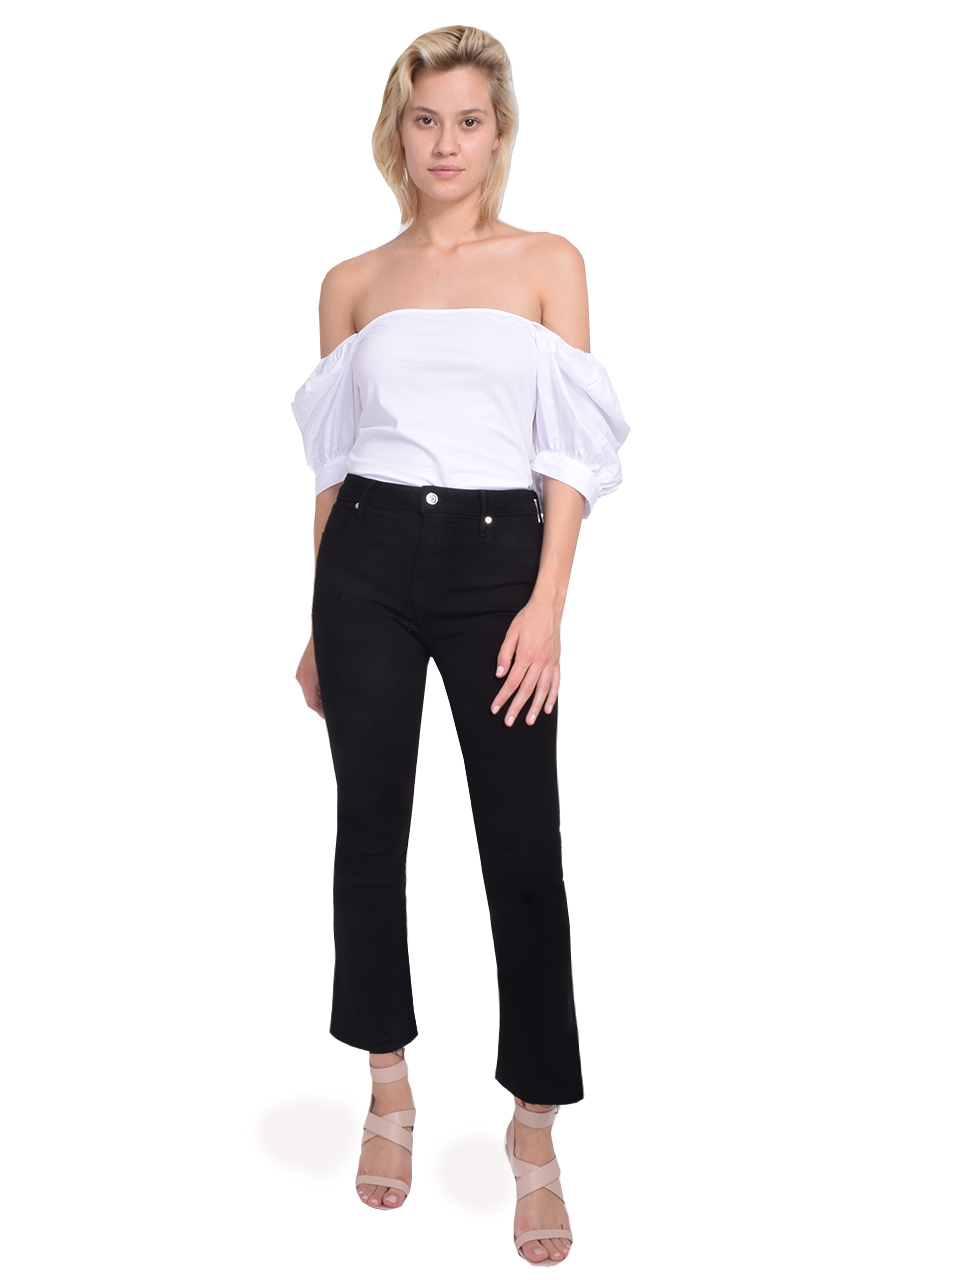 RtA Brandi Jeans in Max Black Full Outfit